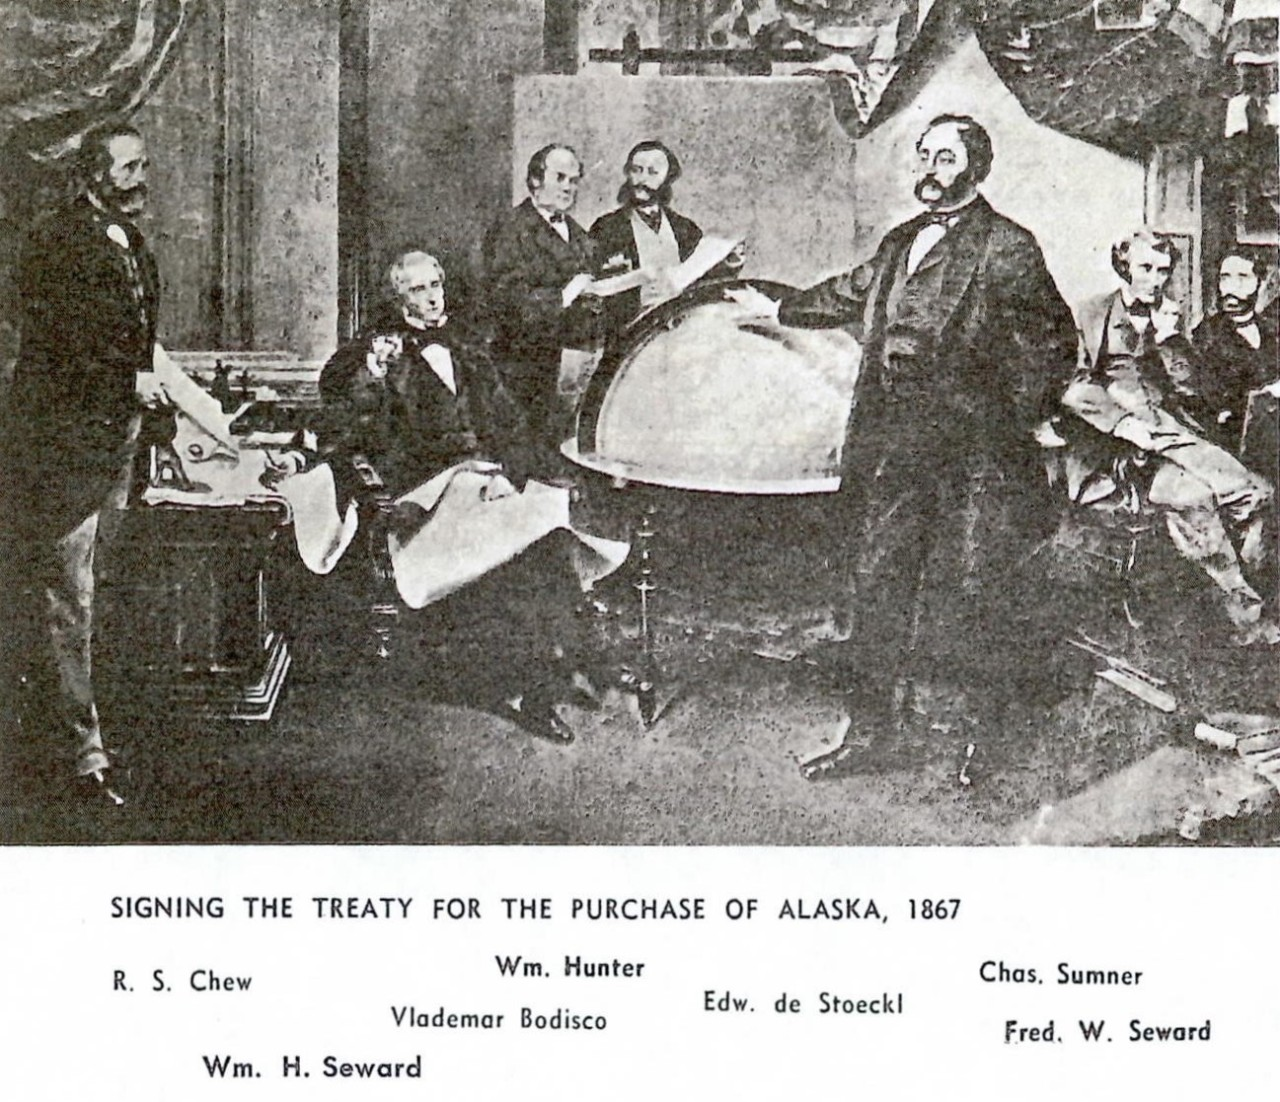 Signing the treaty for the purchase of Alaska, 1867